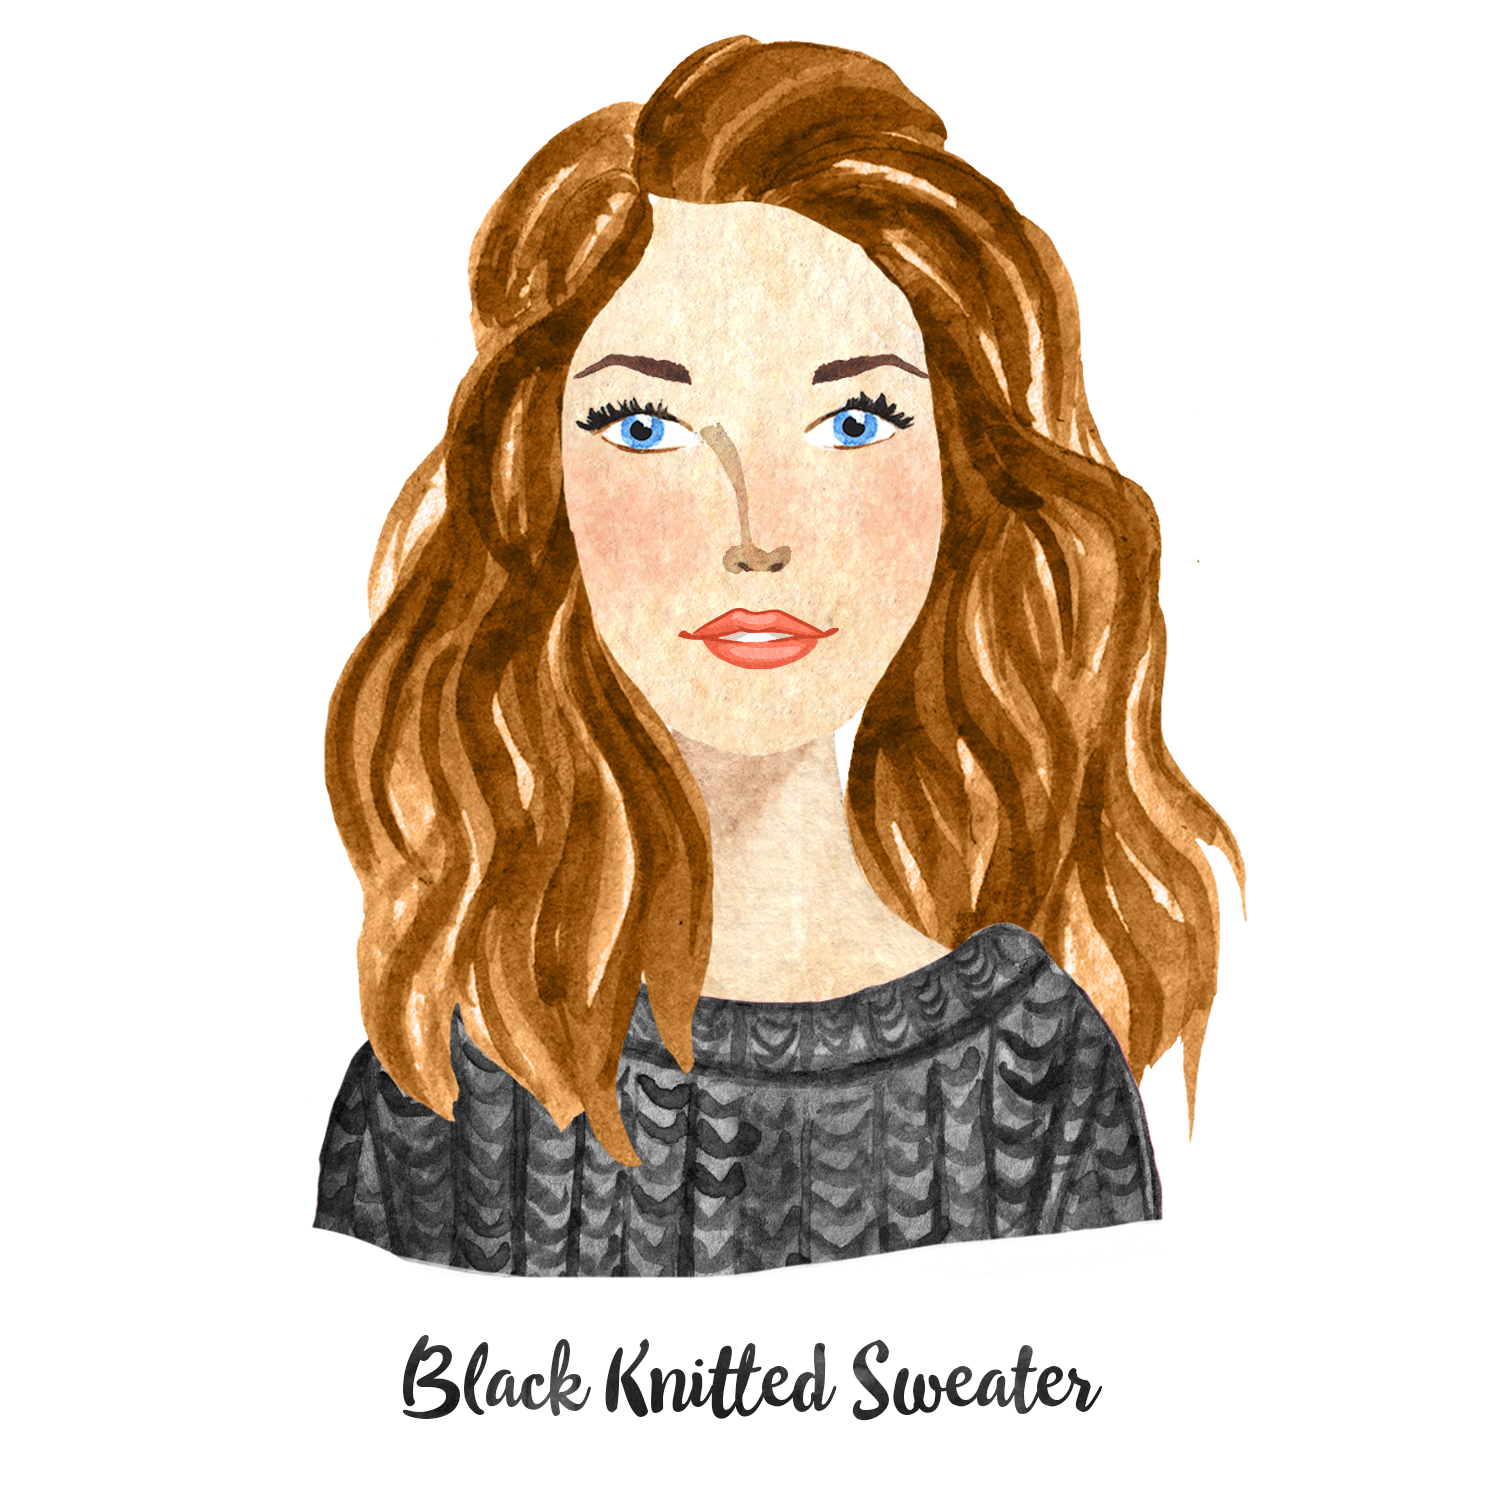 Black Knitted Sweater.jpg